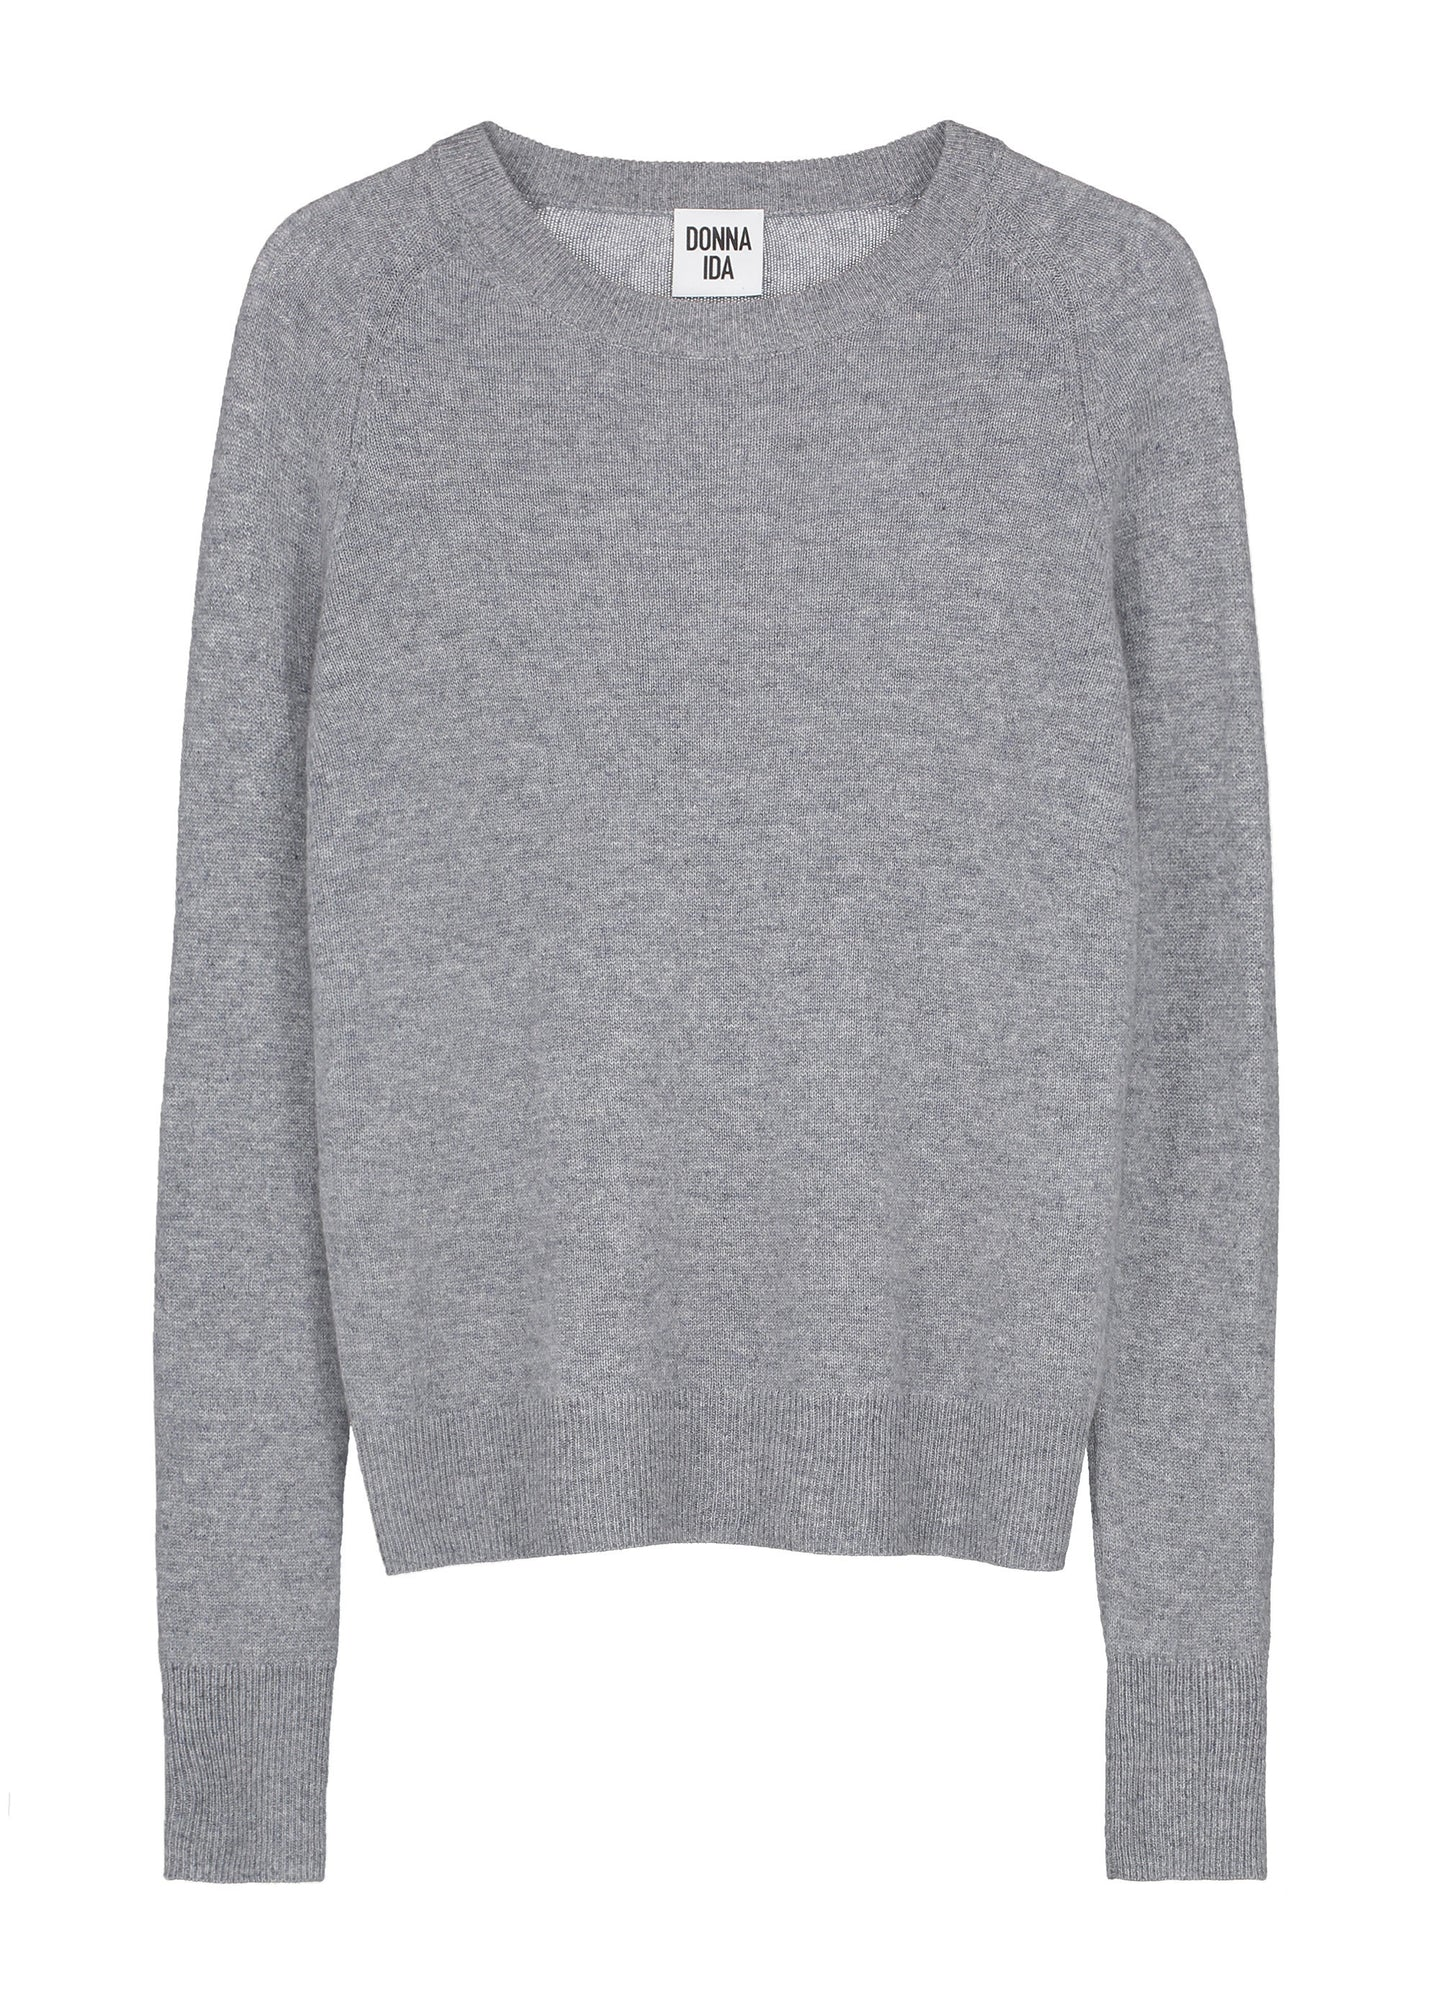 Downtime Cashmere Jumper - Slate